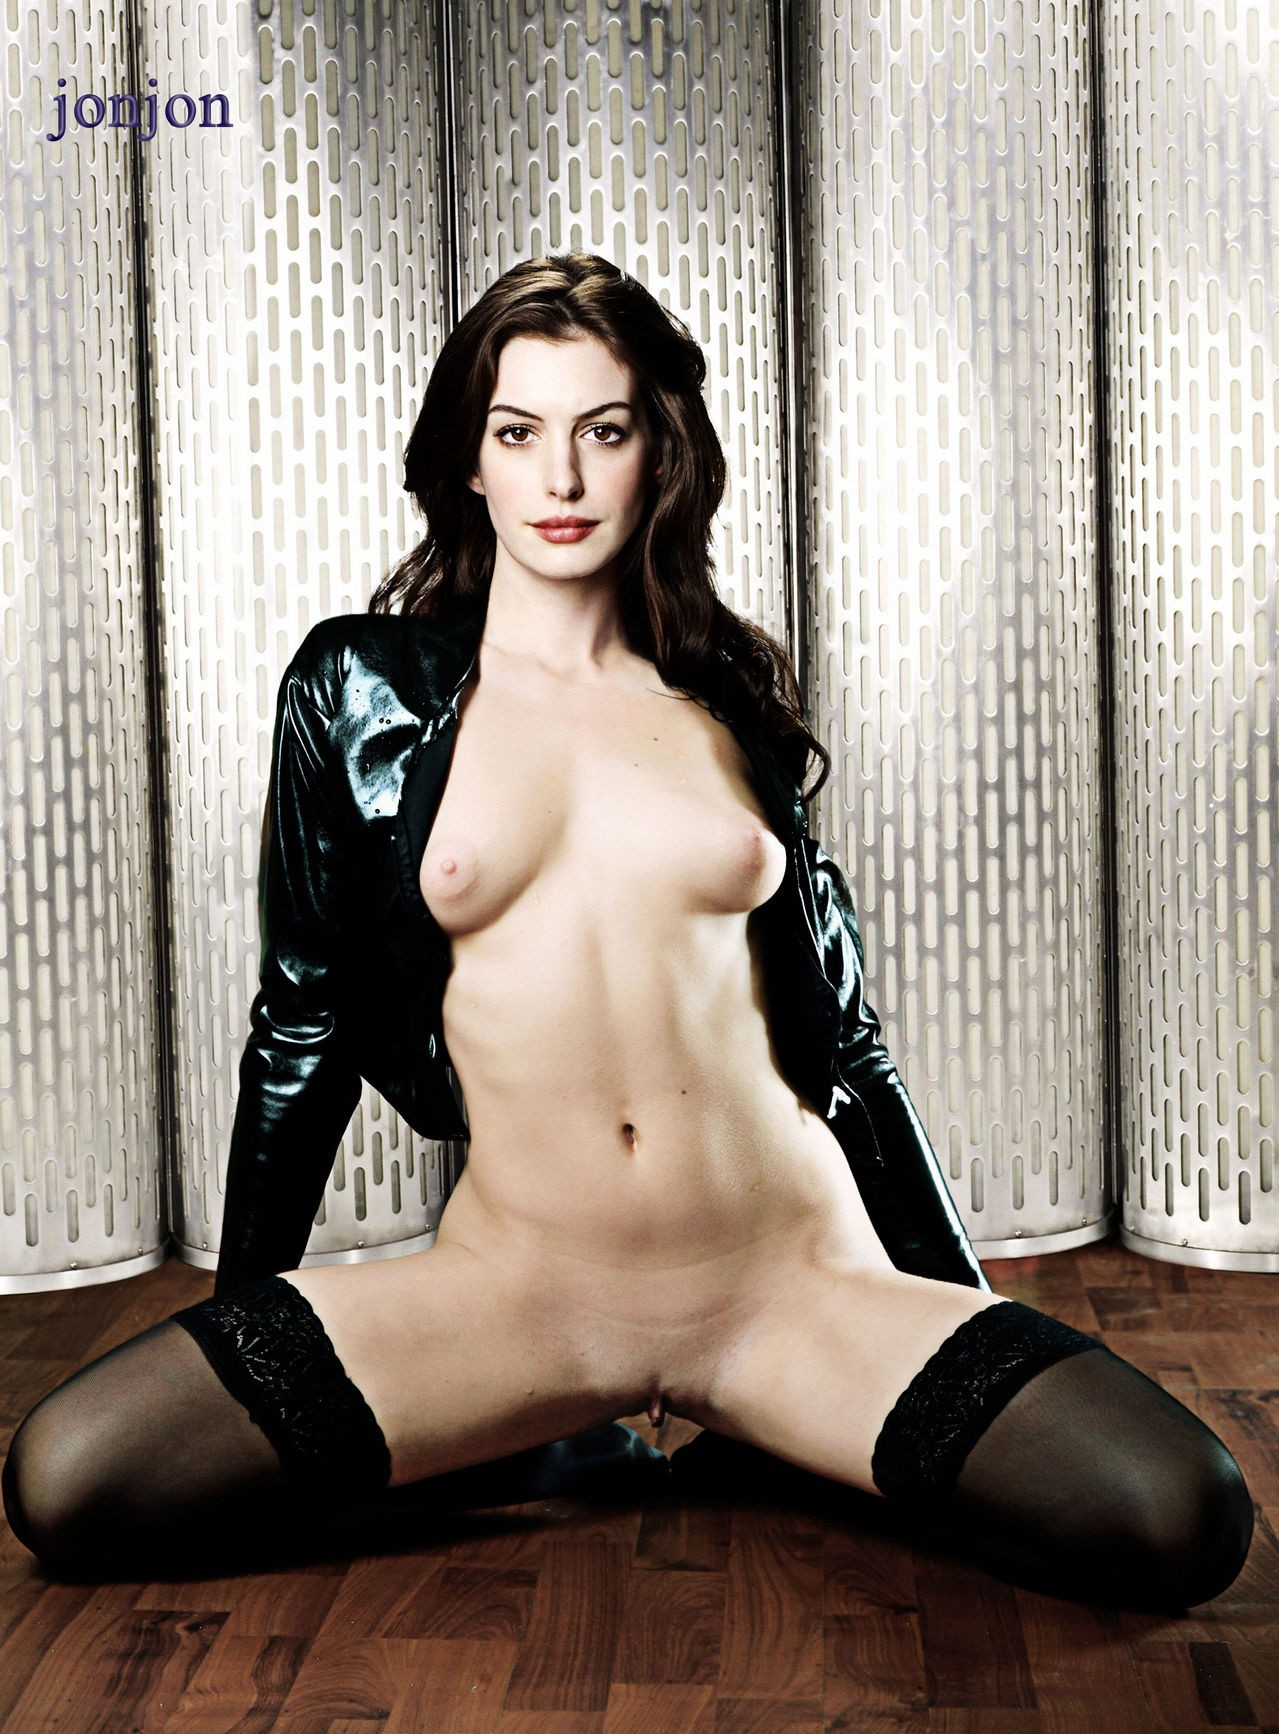 anne-hathaway-fake-porn-young-little-girls-sleeping-naked-pics